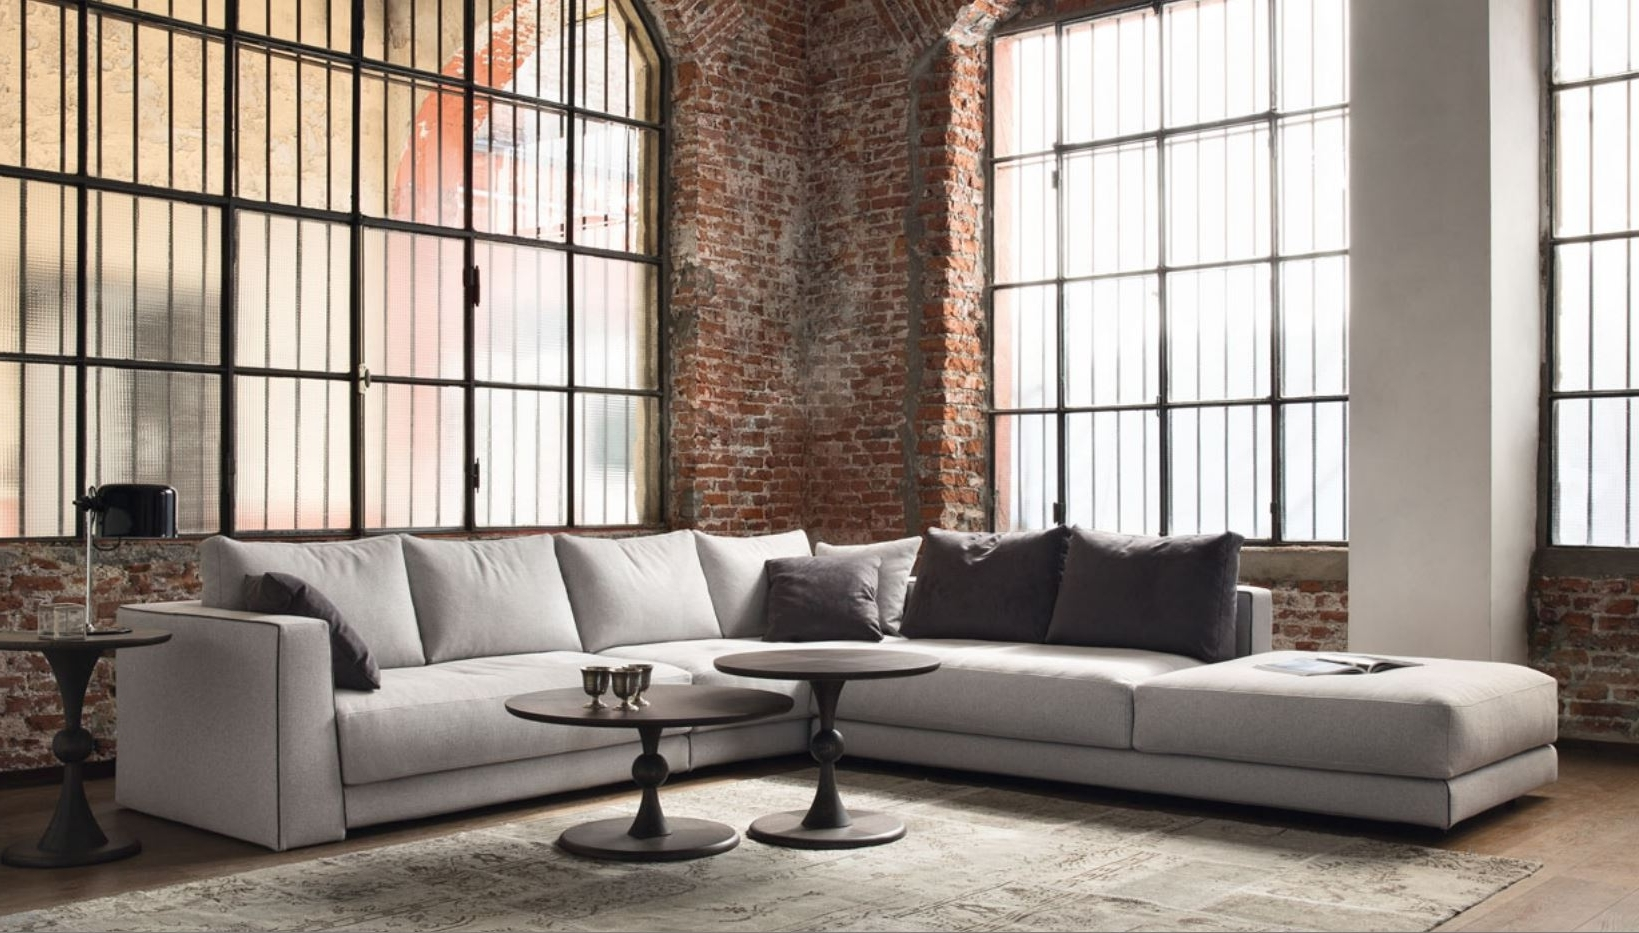 2018 Sectional Sofas At Brick For Contemporary Sectional Couch Best Modern Sectional Sofa Grey (View 1 of 20)